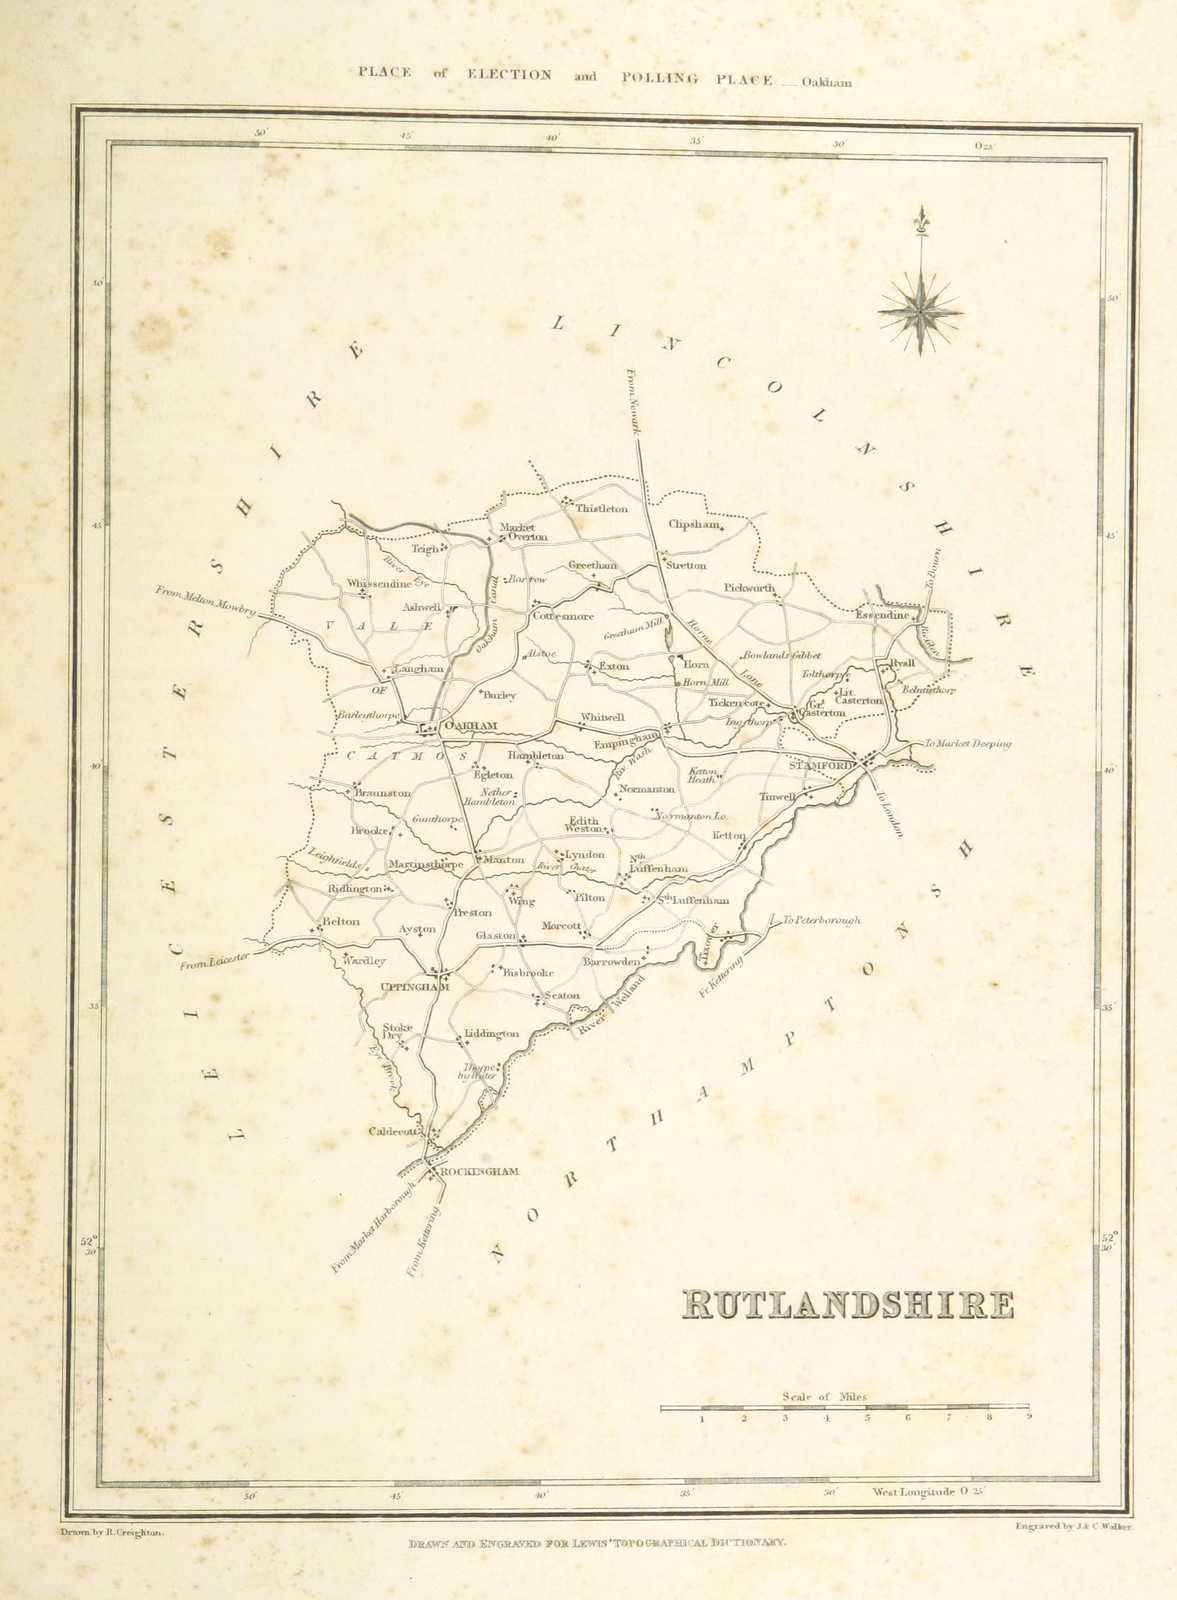 Guernsey England Map.Map From A Topographical Dictionary Of England And The Islands